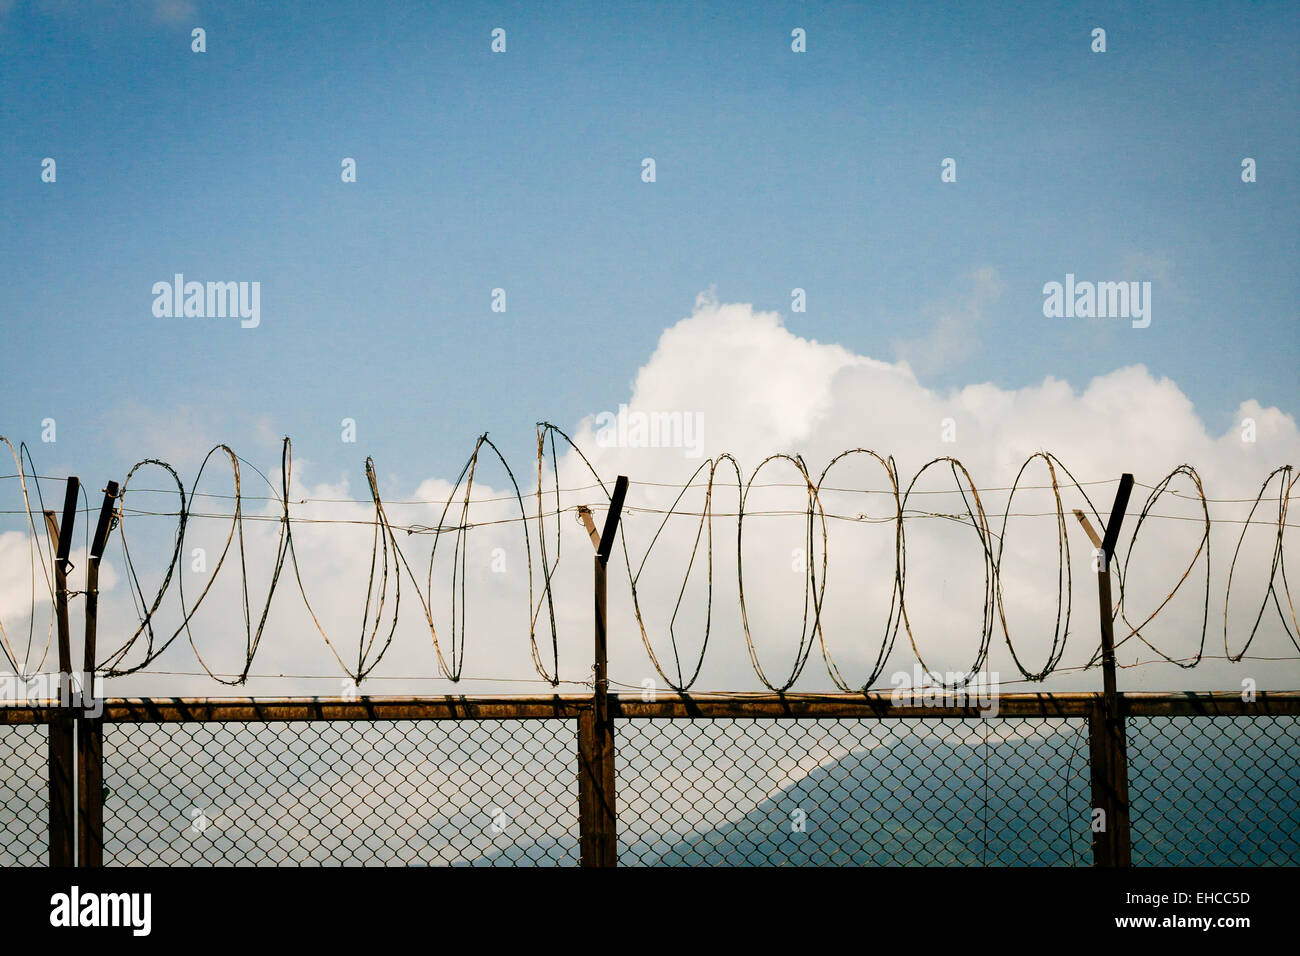 barbed wire fence razor blue sky clouds - Stock Image